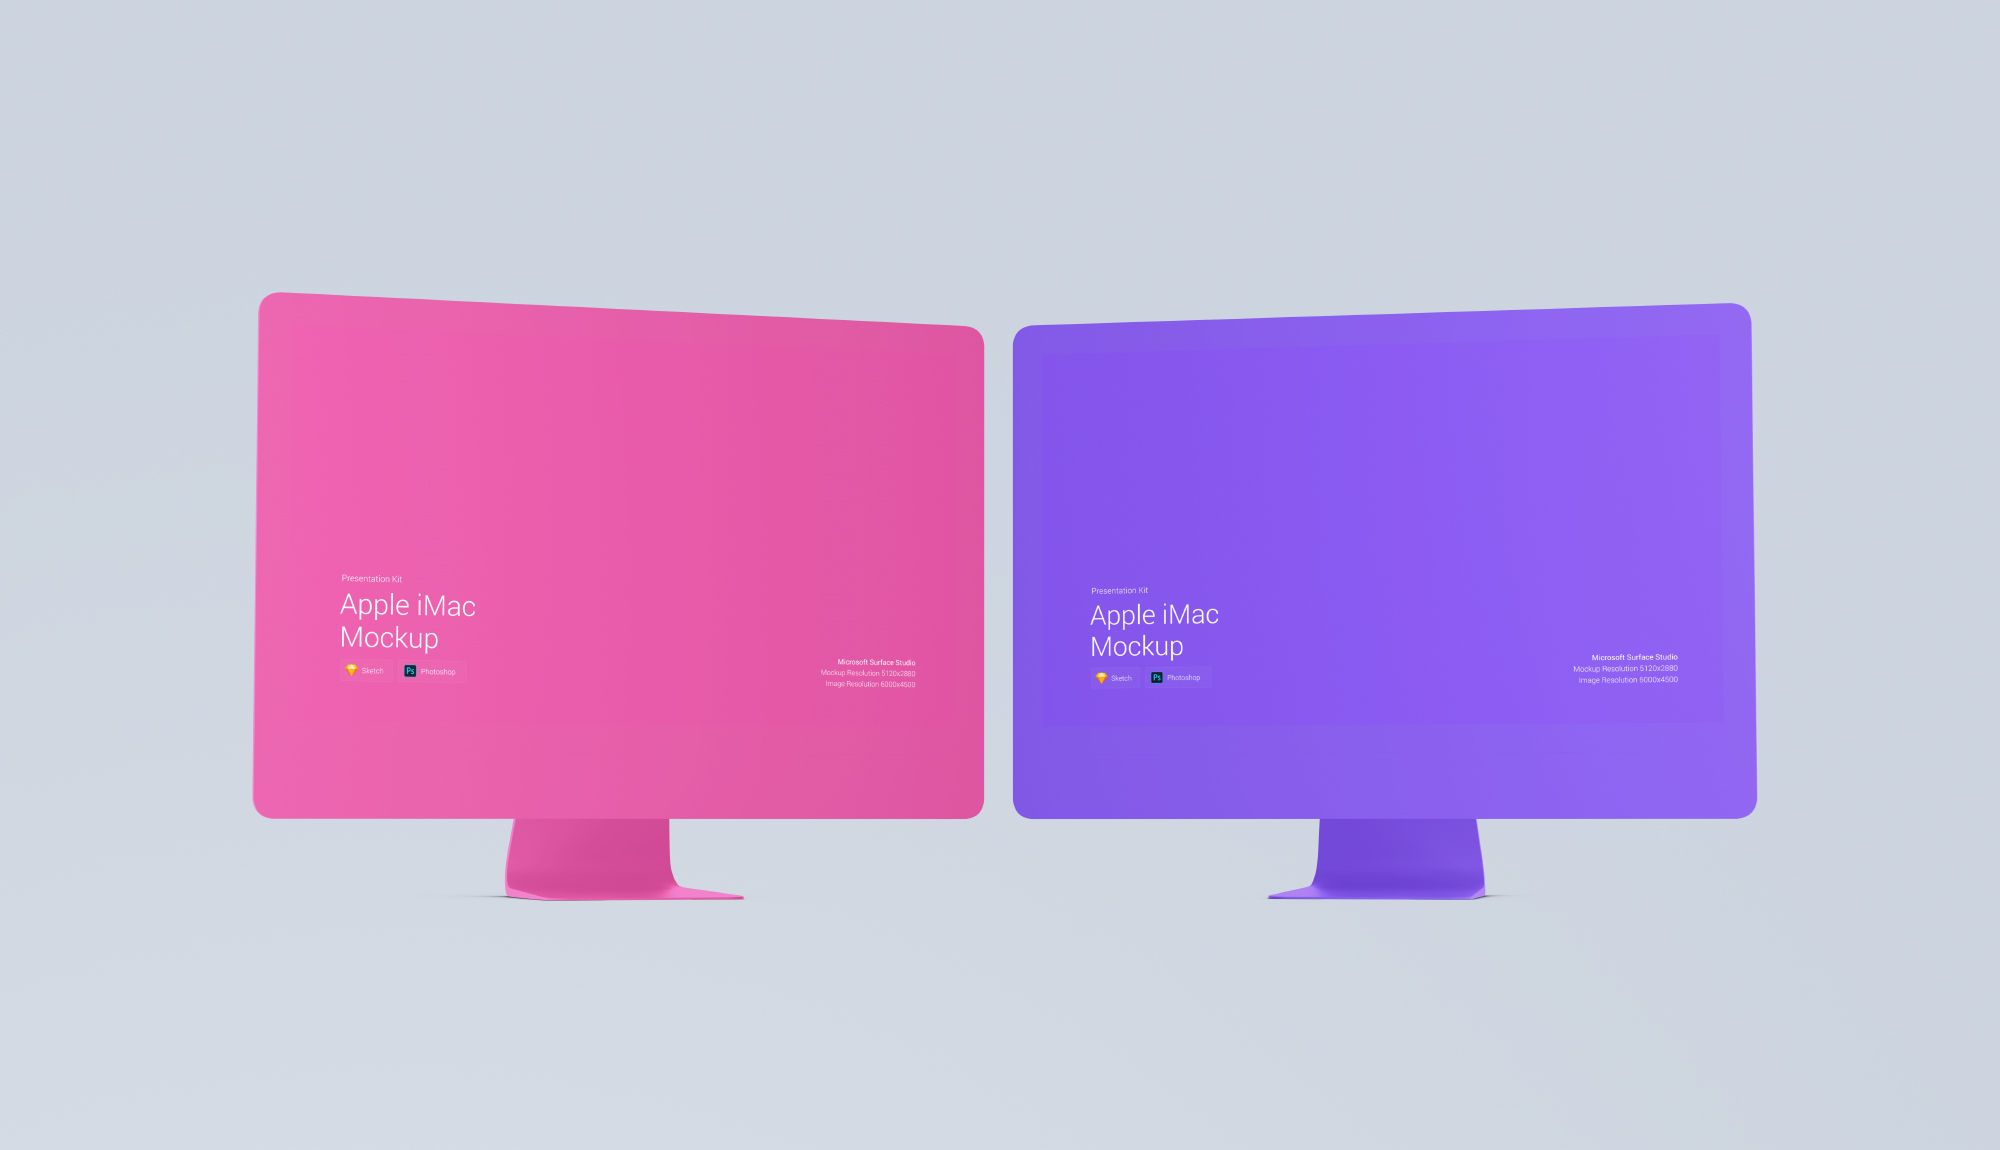 Imac Pro Mockups For Sketch And Photoshop Download Highest Quality High Resolution 9 Scenes 44 Mockups 6000 X 4 Imac Apple Watch Edition Apple Watch Iphone